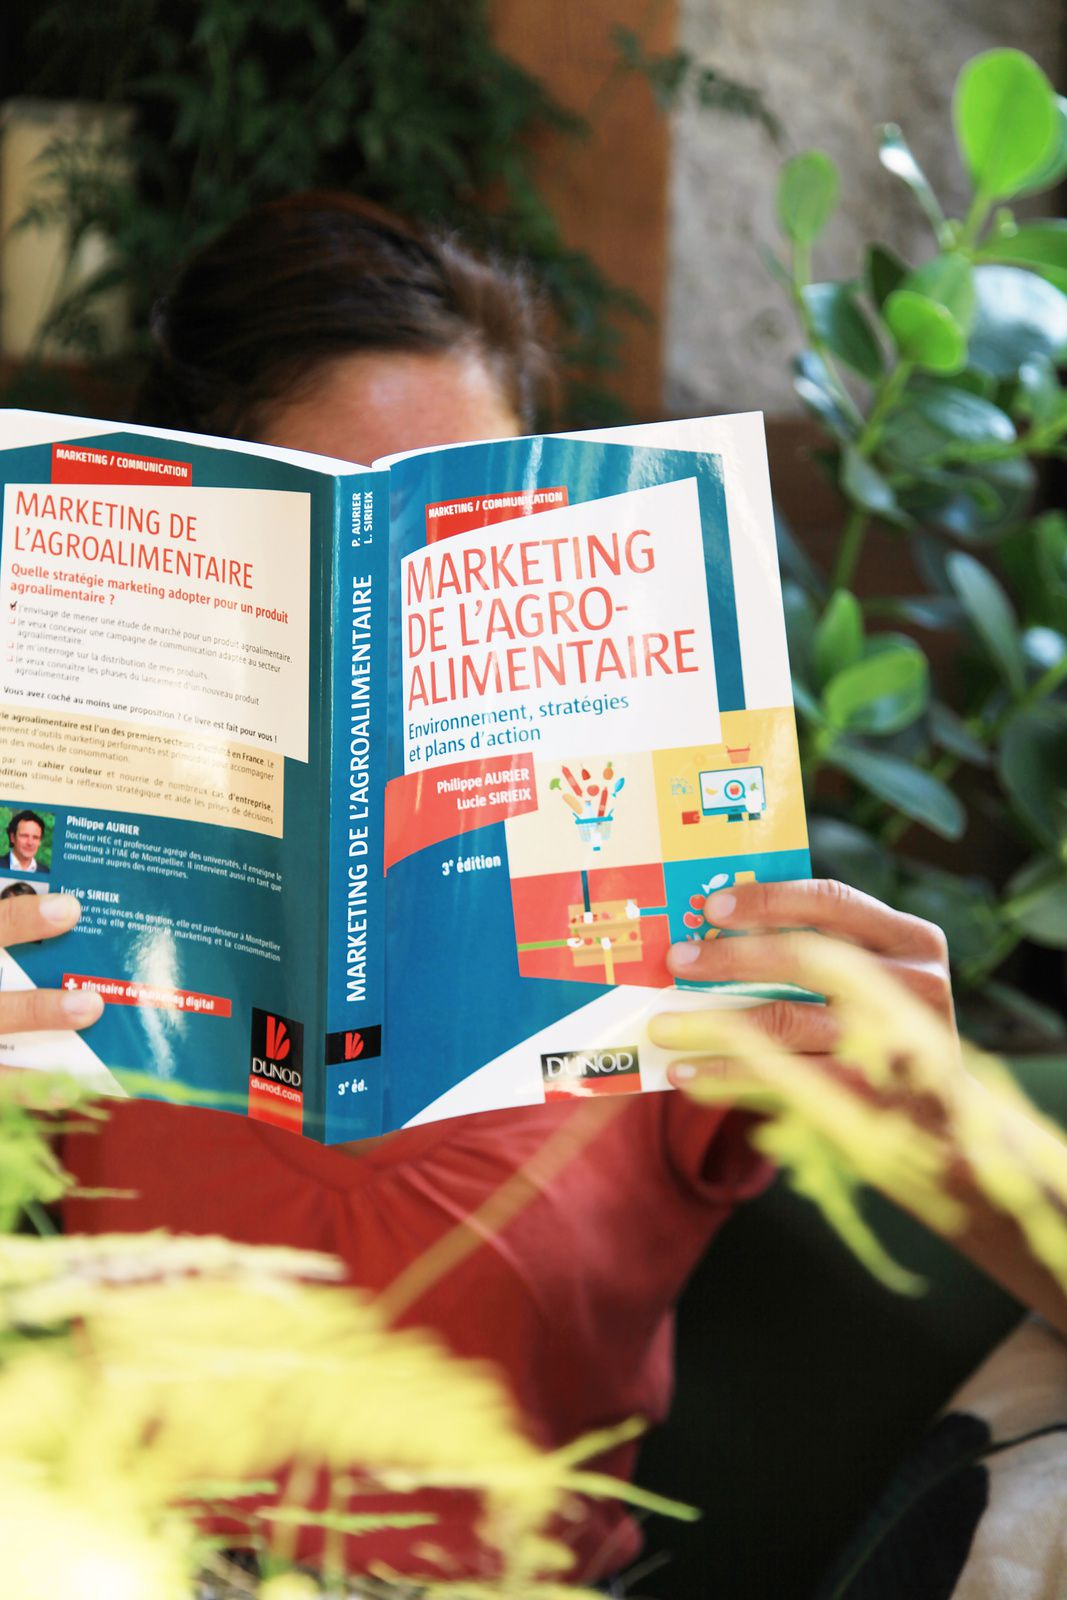 Marketing de l'agroalimentaire - 3e édition, Philippe Aurier, Lucie Sirieix, ed. Dunod (2016) I Photo © Virginie Bouvard ❤